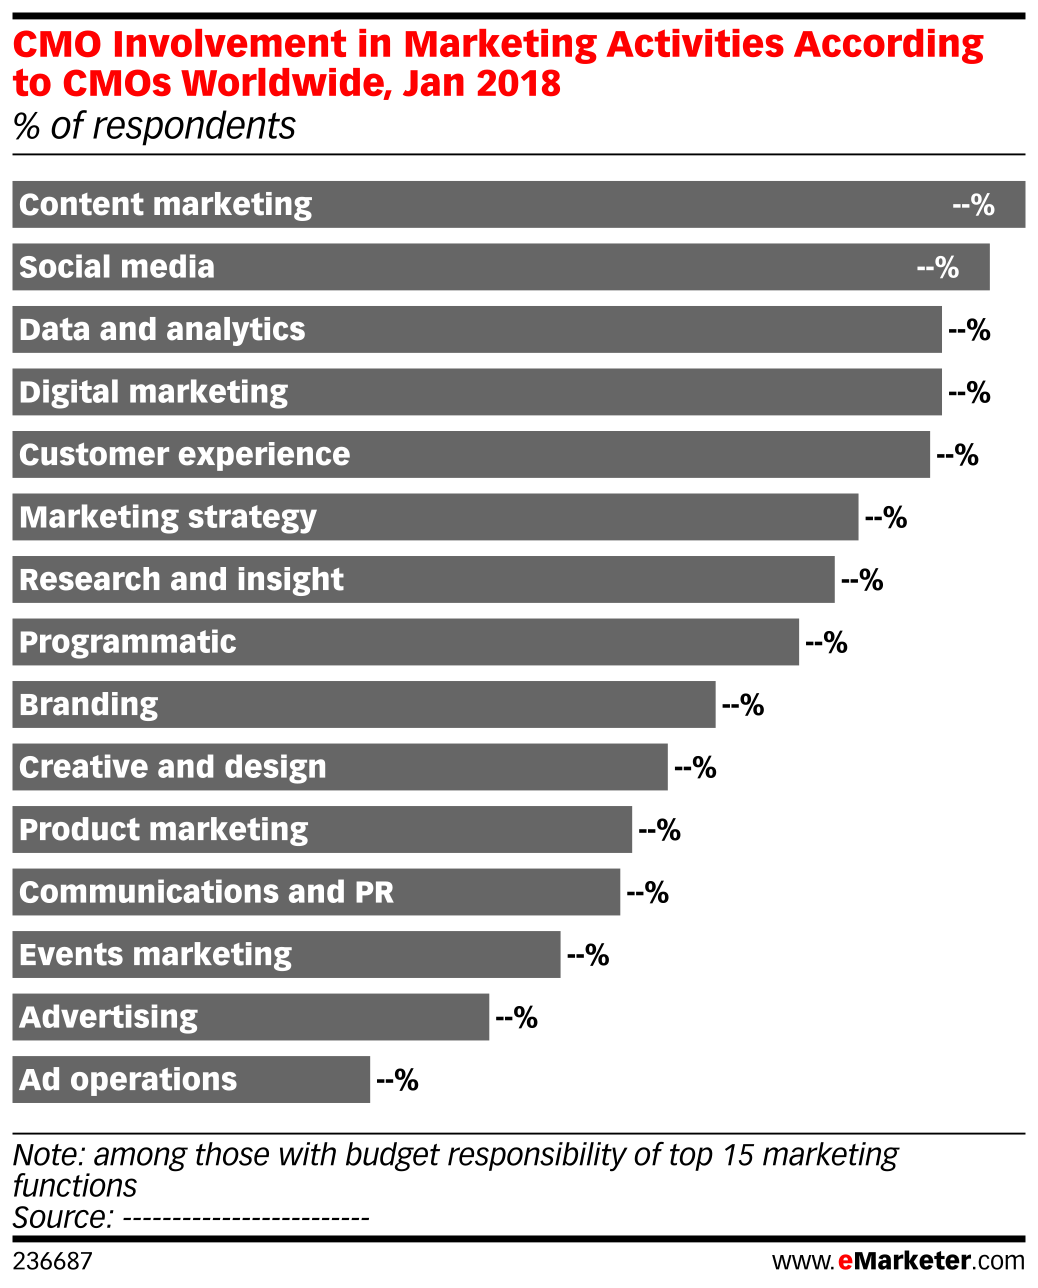 CMO Involvement in Marketing Activities According to CMOs Worldwide, Jan 2018 (% of respondents)